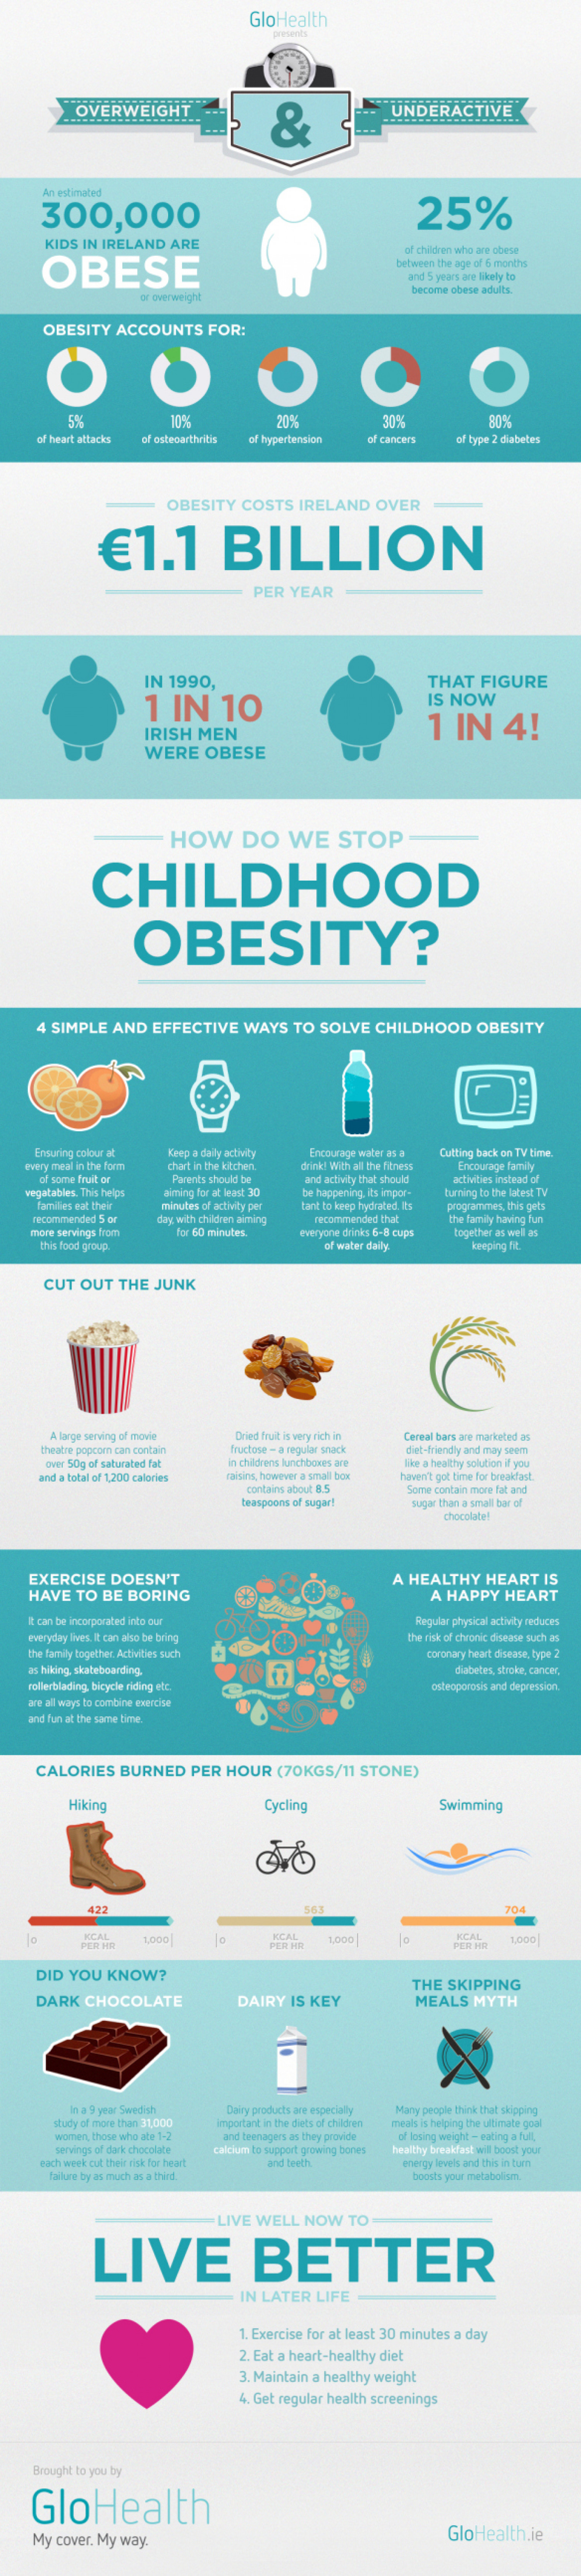 Overweight and Underactive Infographic